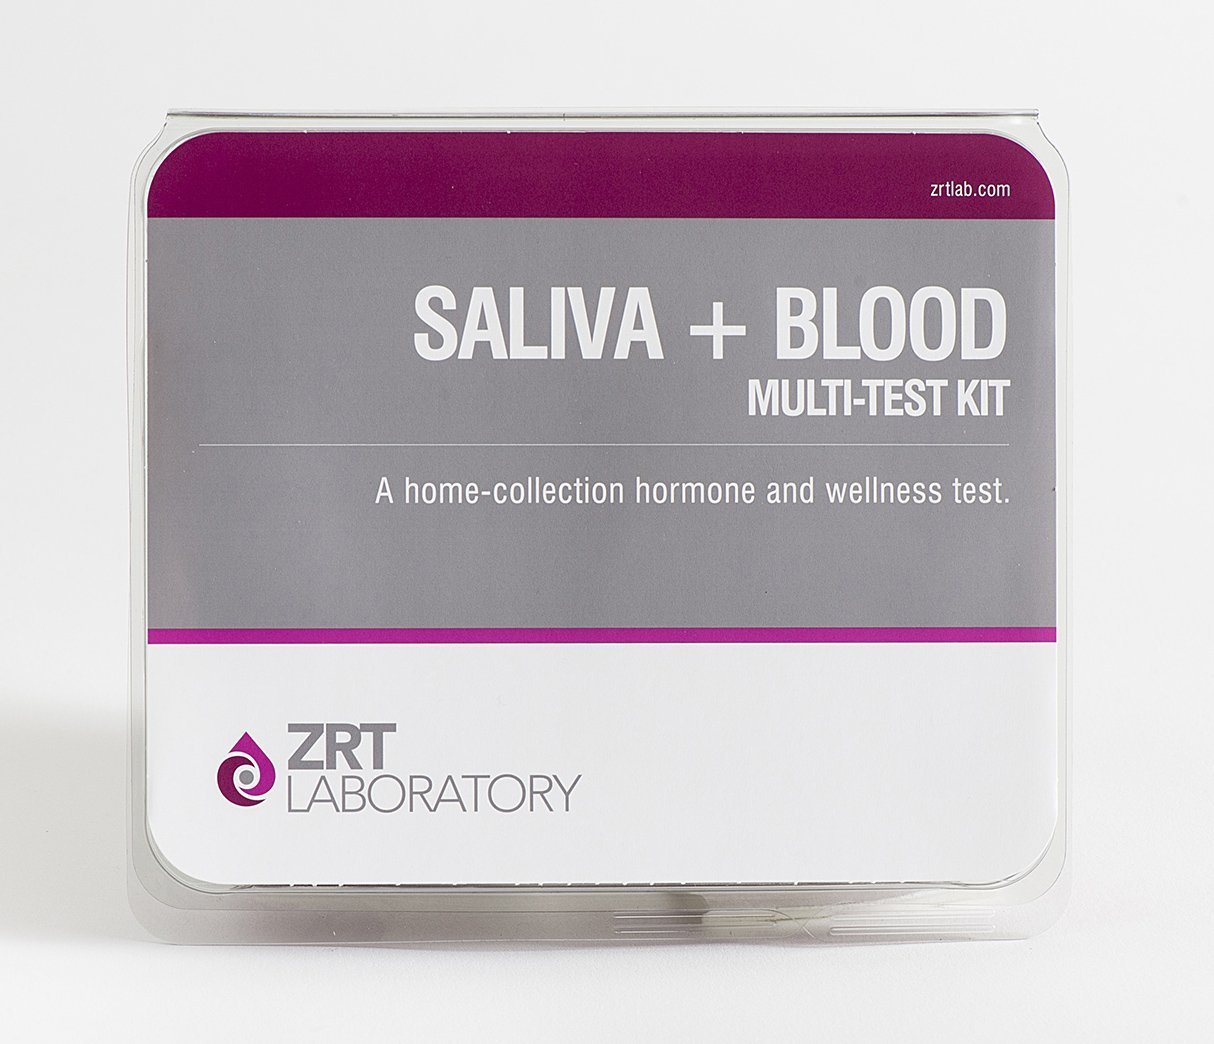 12 Hormone Comprehensive Male Profile I Home Test Kit (Saliva: E2, T, DS, Cx4; Blood: PSA, TSH, fT3, fT4, TPO) - Includes Pre-Paid Sample Return Label by TestCountry/ZRT Laboratory (Image #2)